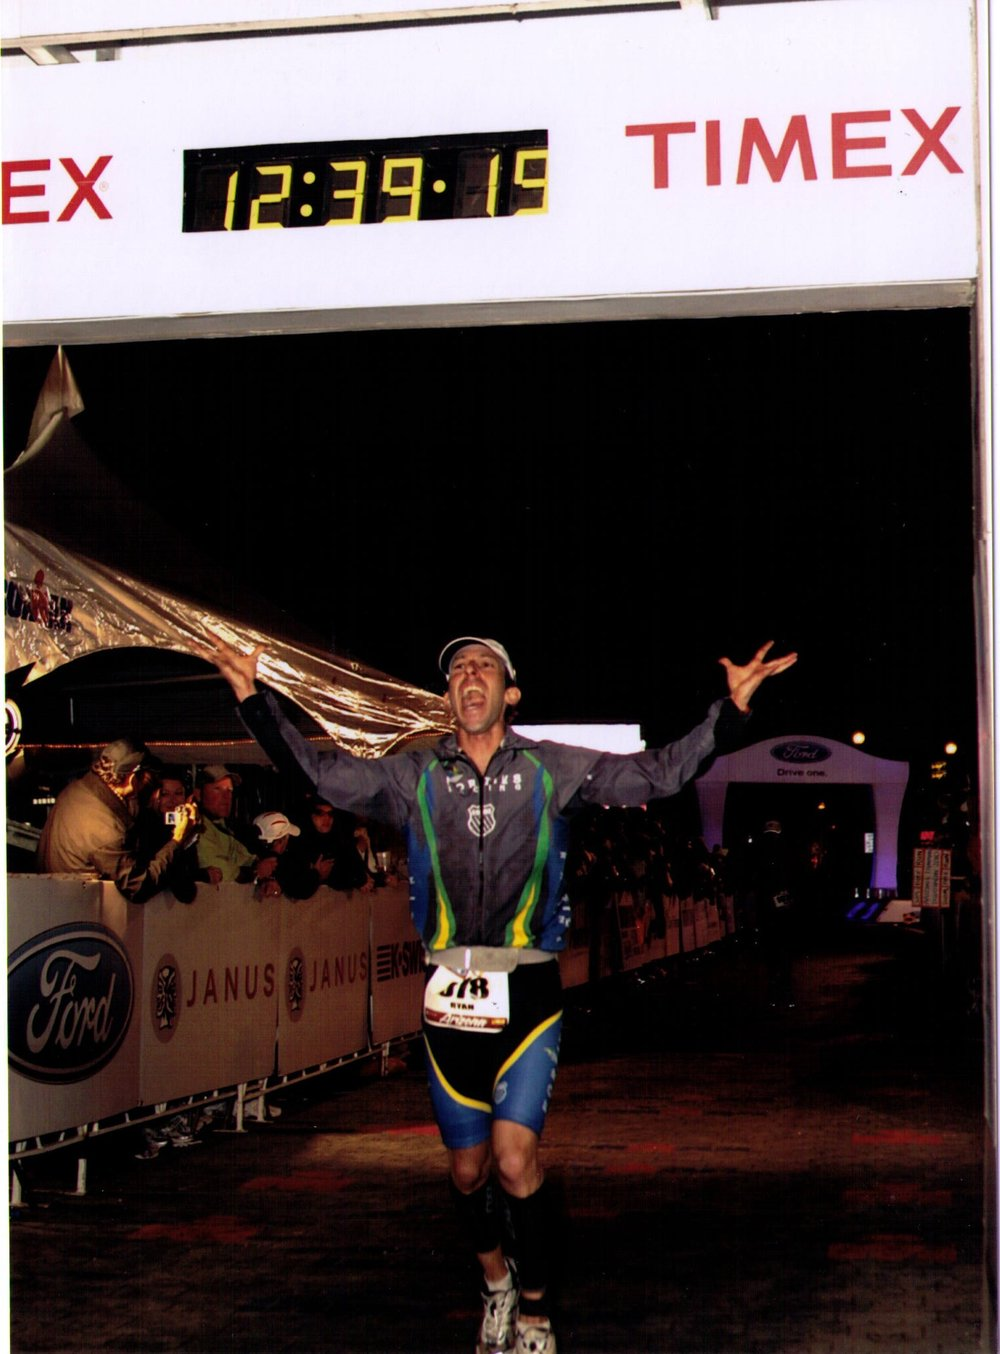 Crossing the line at my first Ironman, one of the best moments in my life.